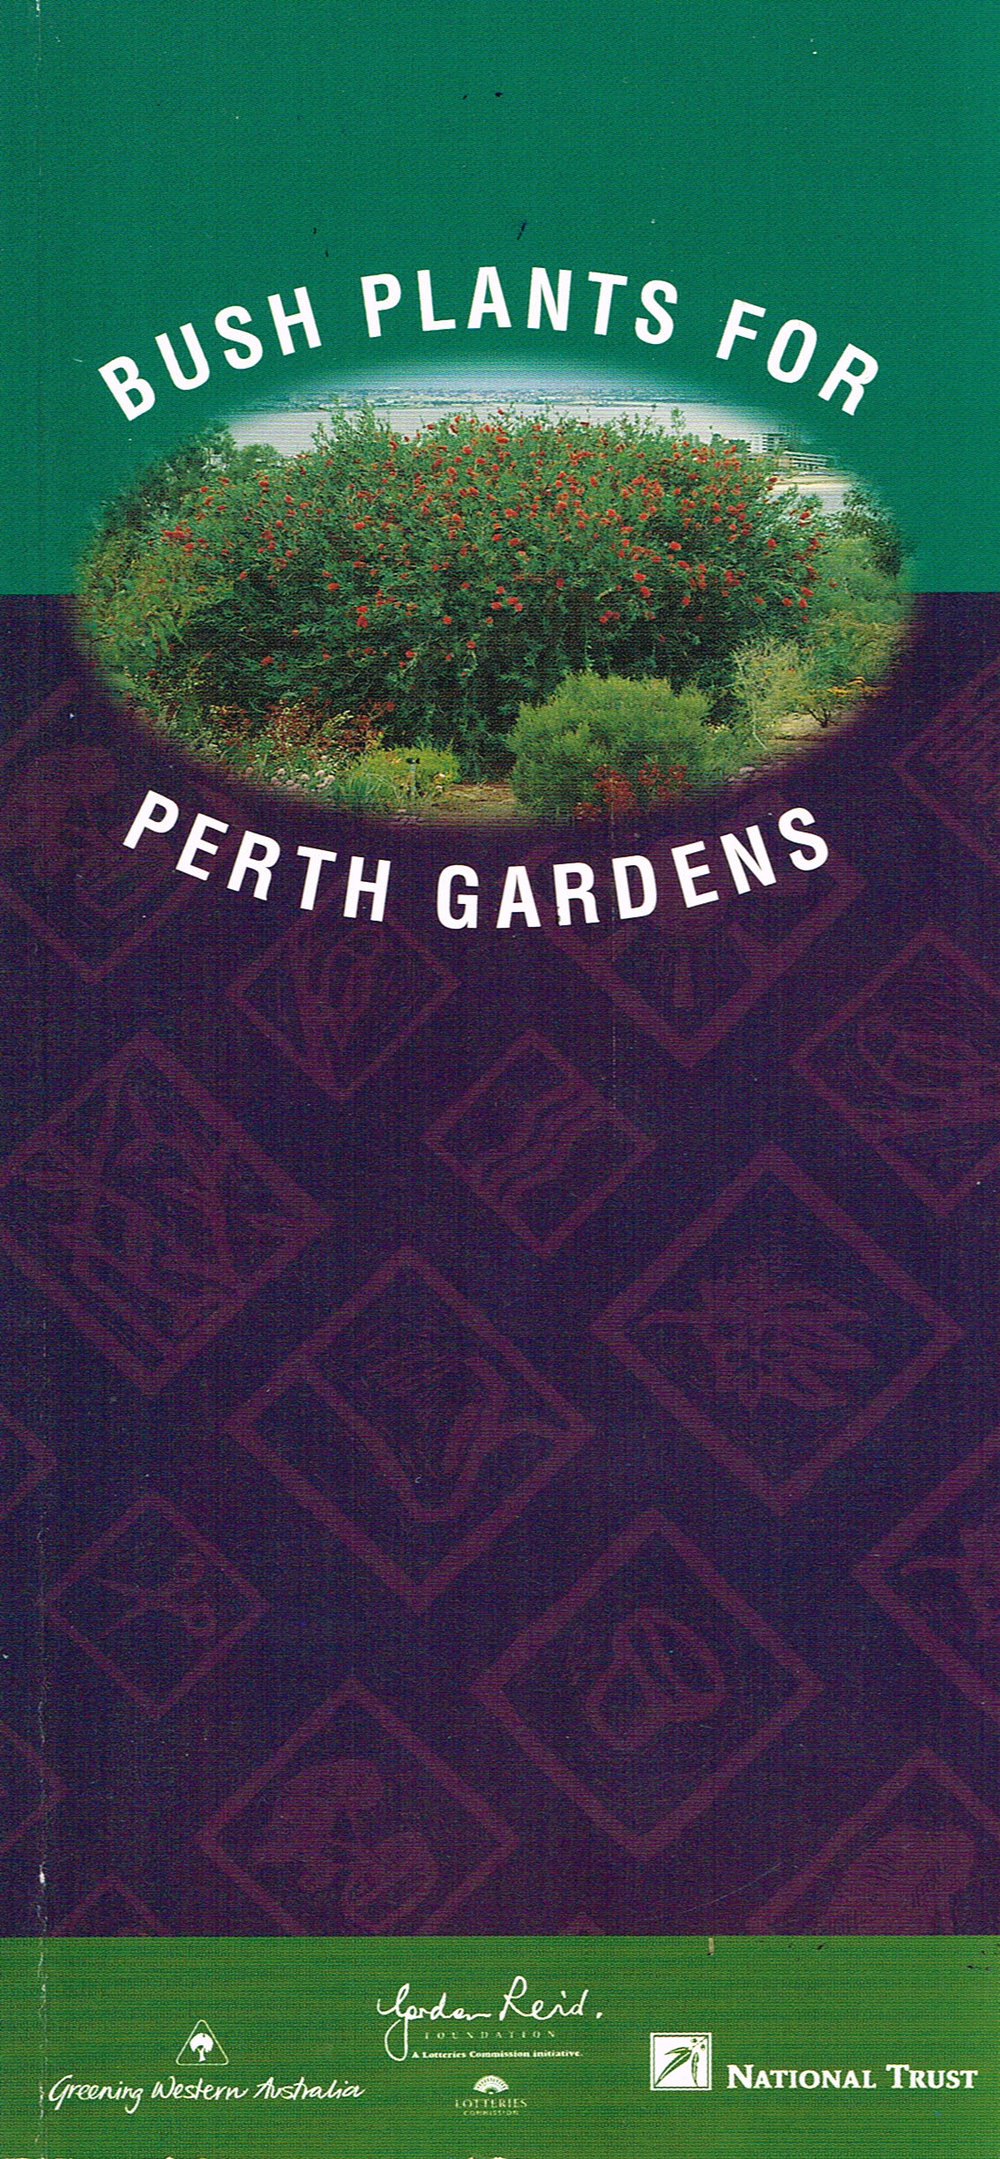 Bush Plants for Perth Gardens   Complied by Denise Crosbie in Association with Eleanor Bennett...et al.